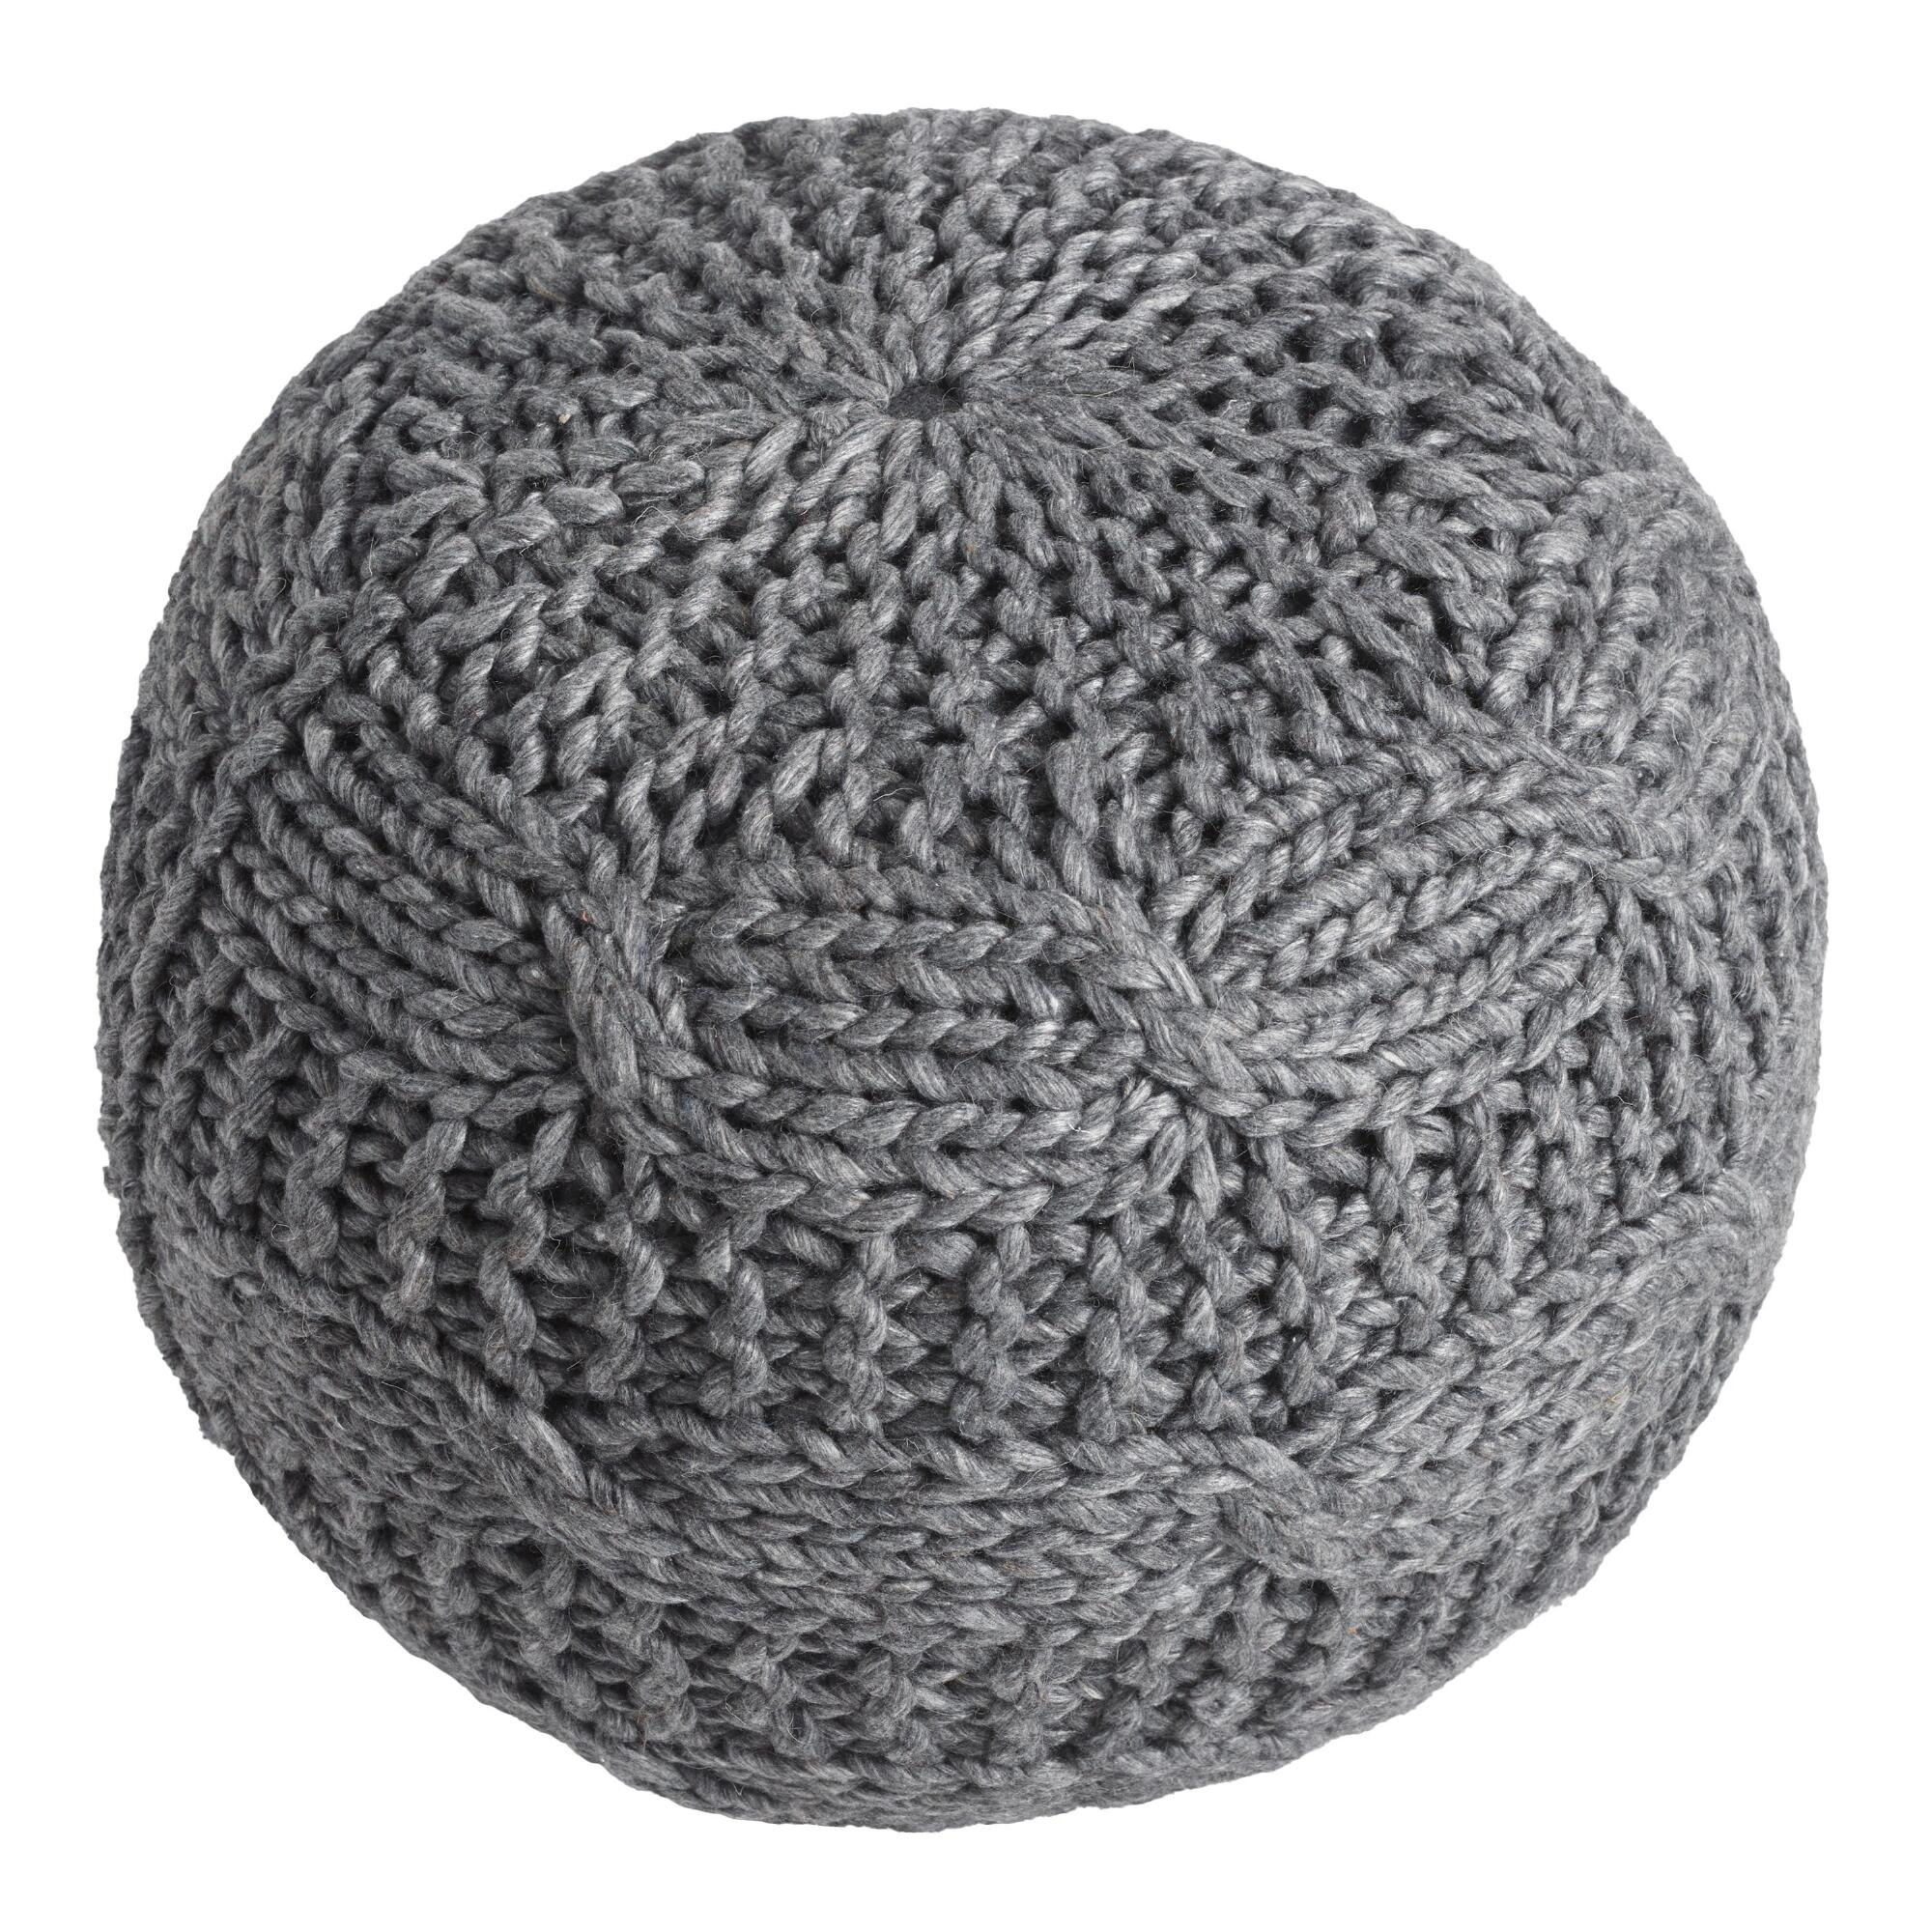 floor pillows floor cushions  poufs  world market - charcoal heather gray sweater pouf